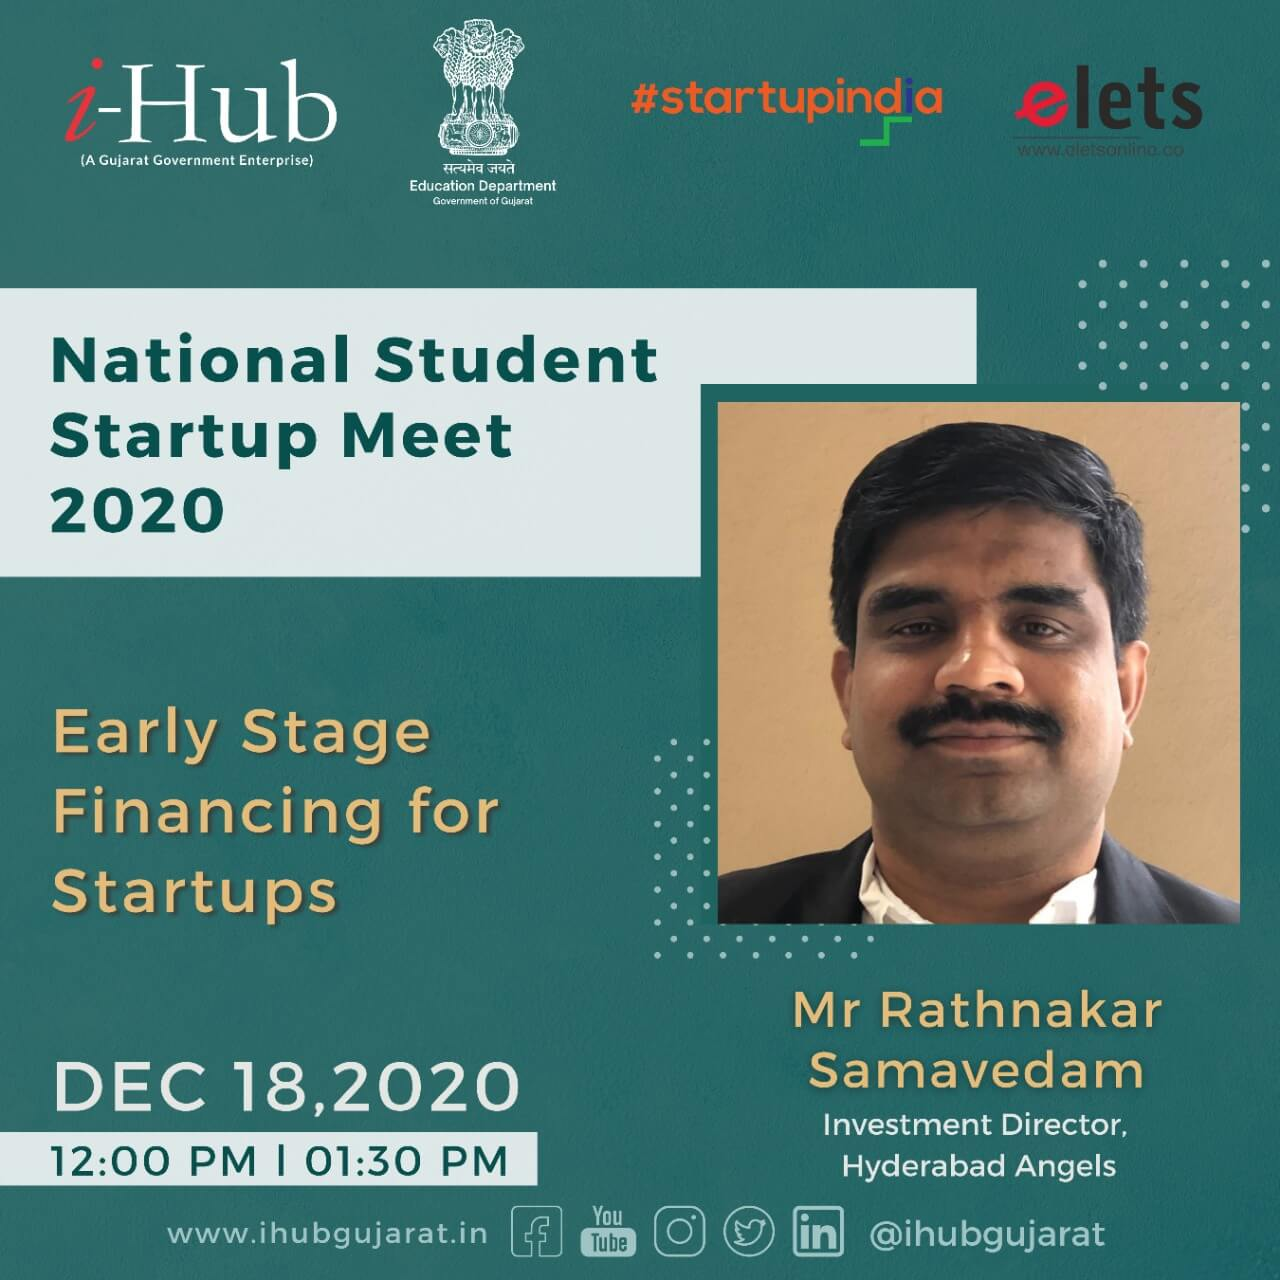 Early Stage Financing for Startups